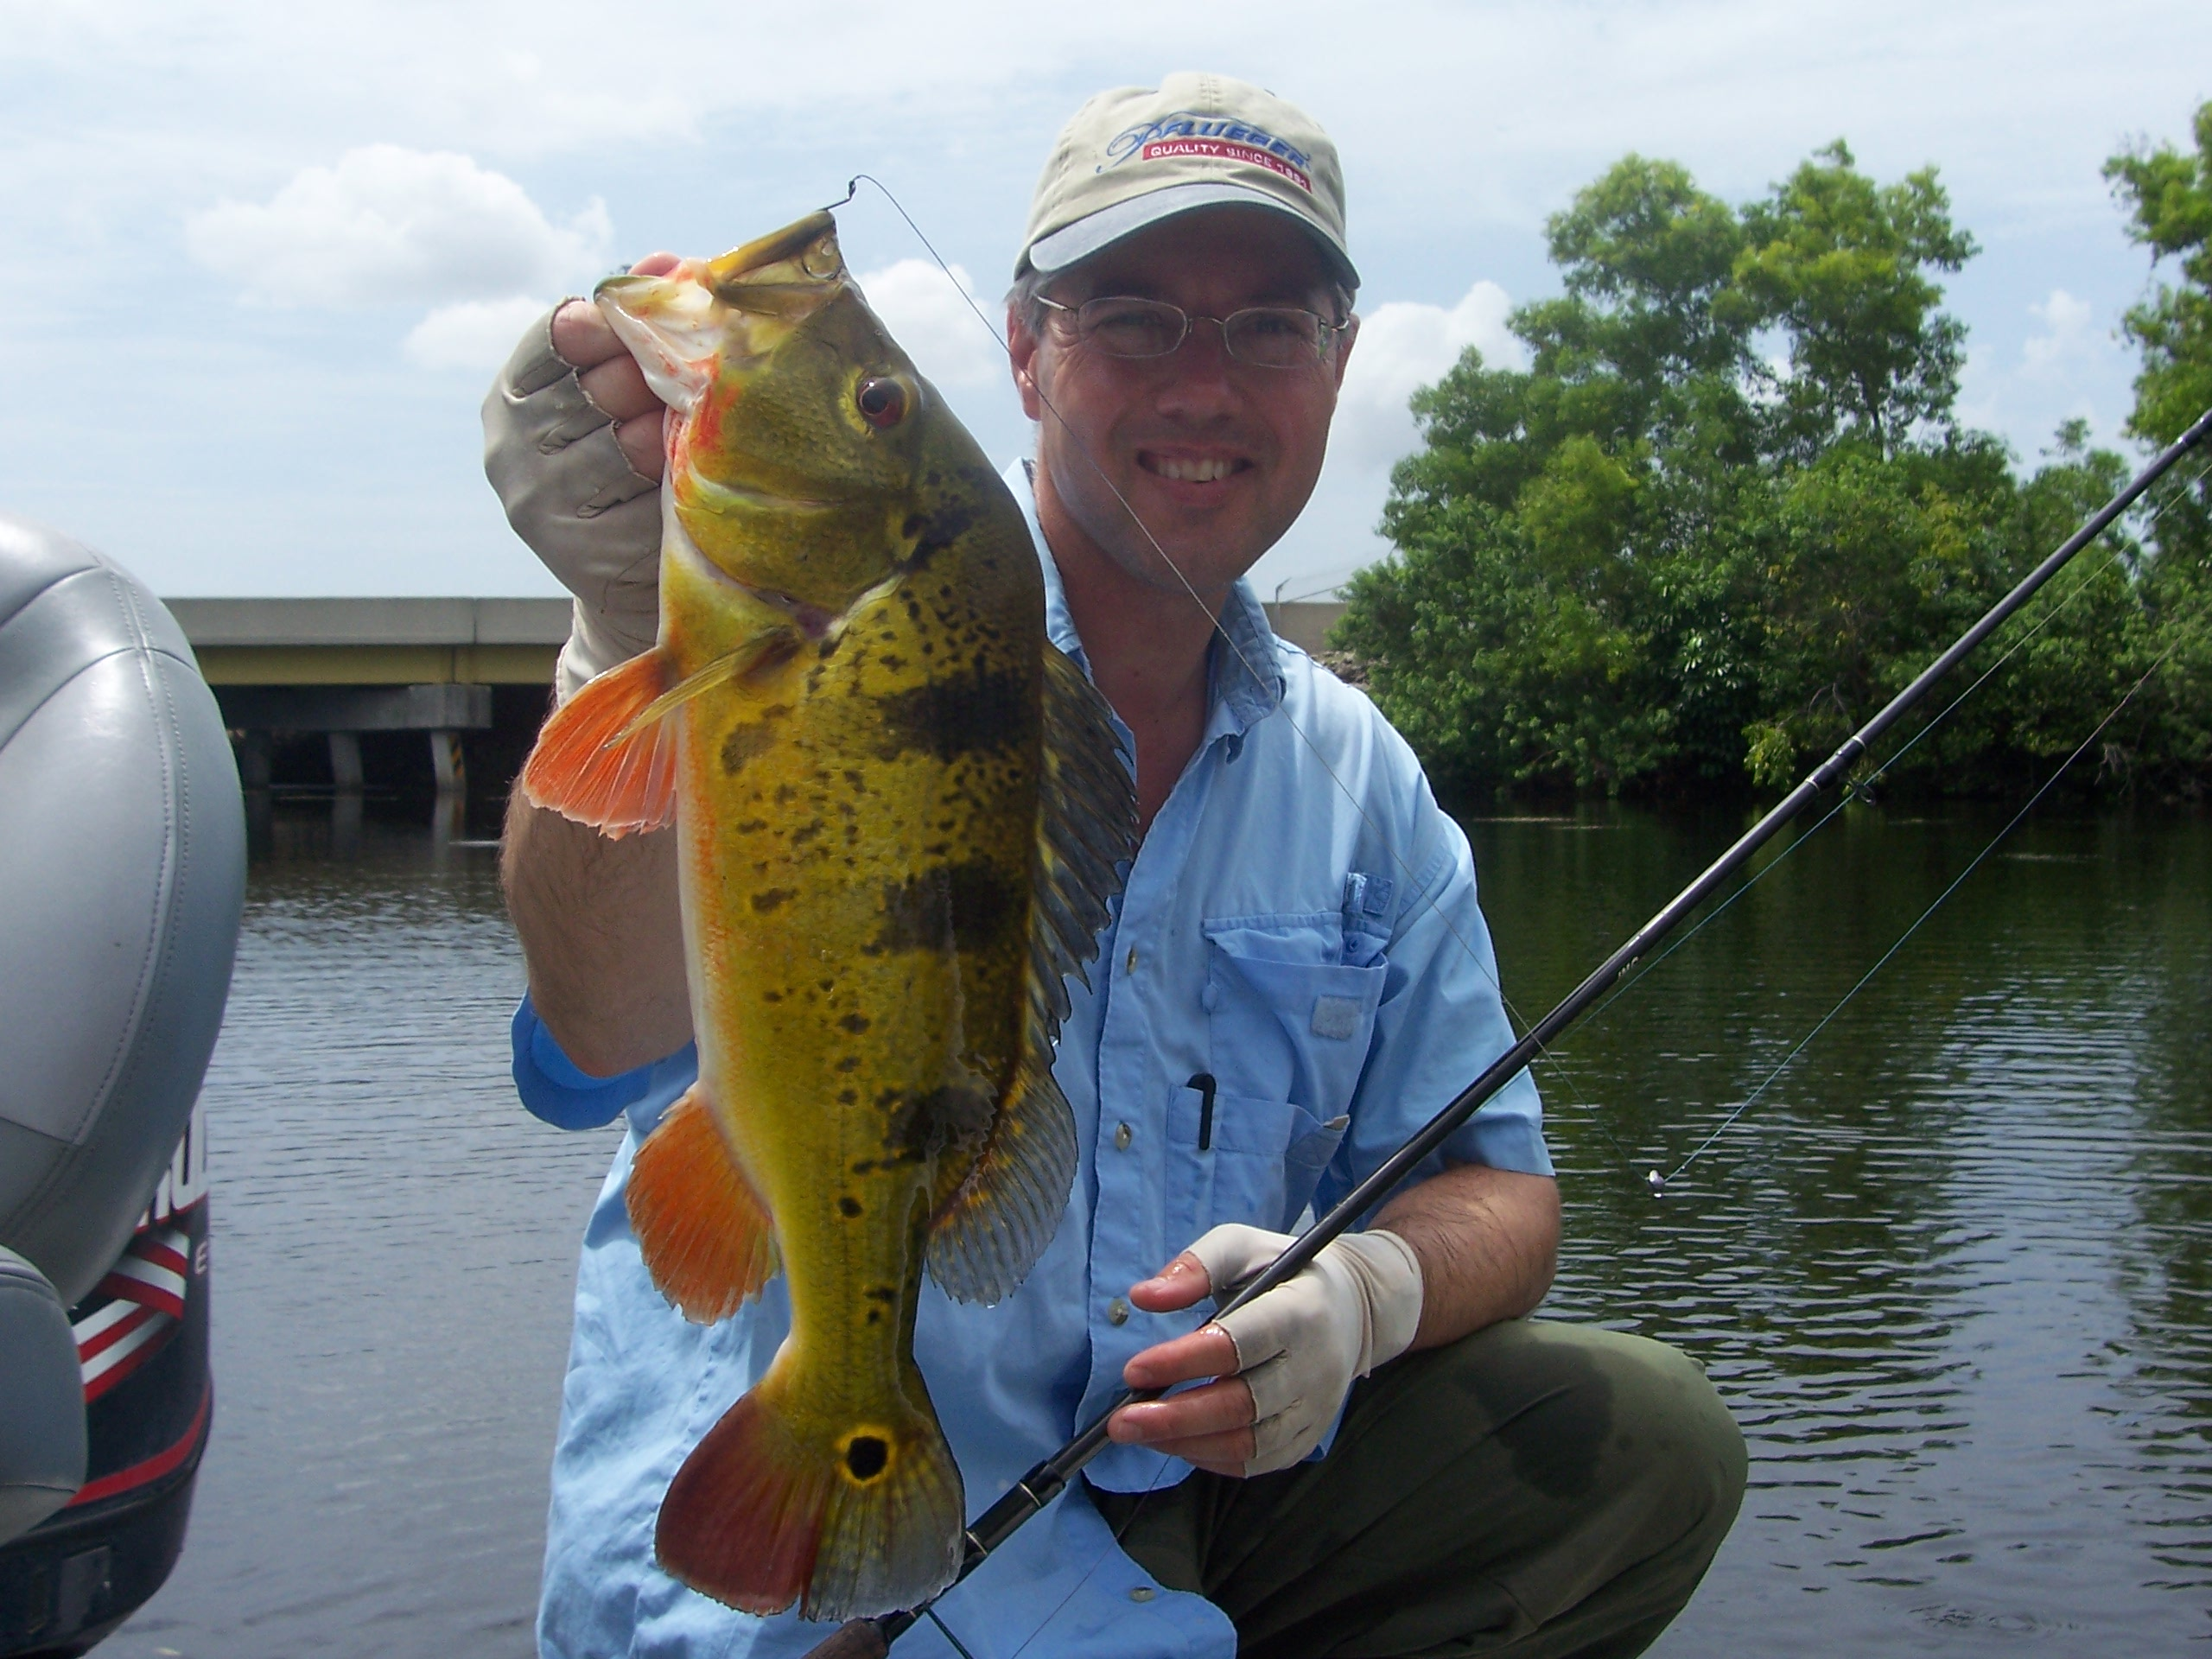 South florida bass fishing reports blog south florida for South florida fishing